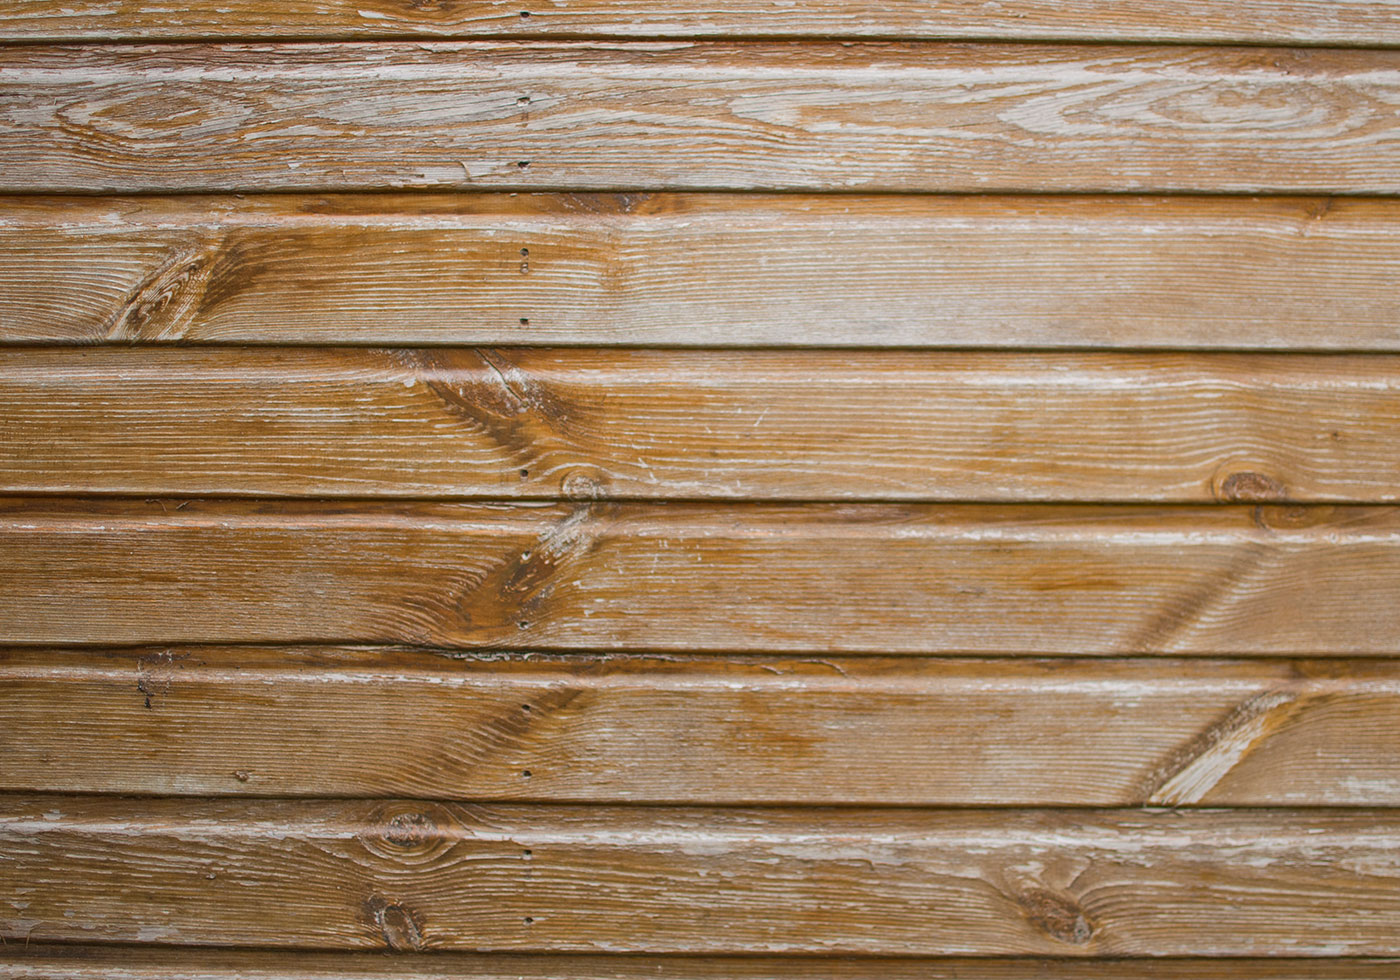 Slatted Wood - Free Photoshop Brushes at Brusheezy!